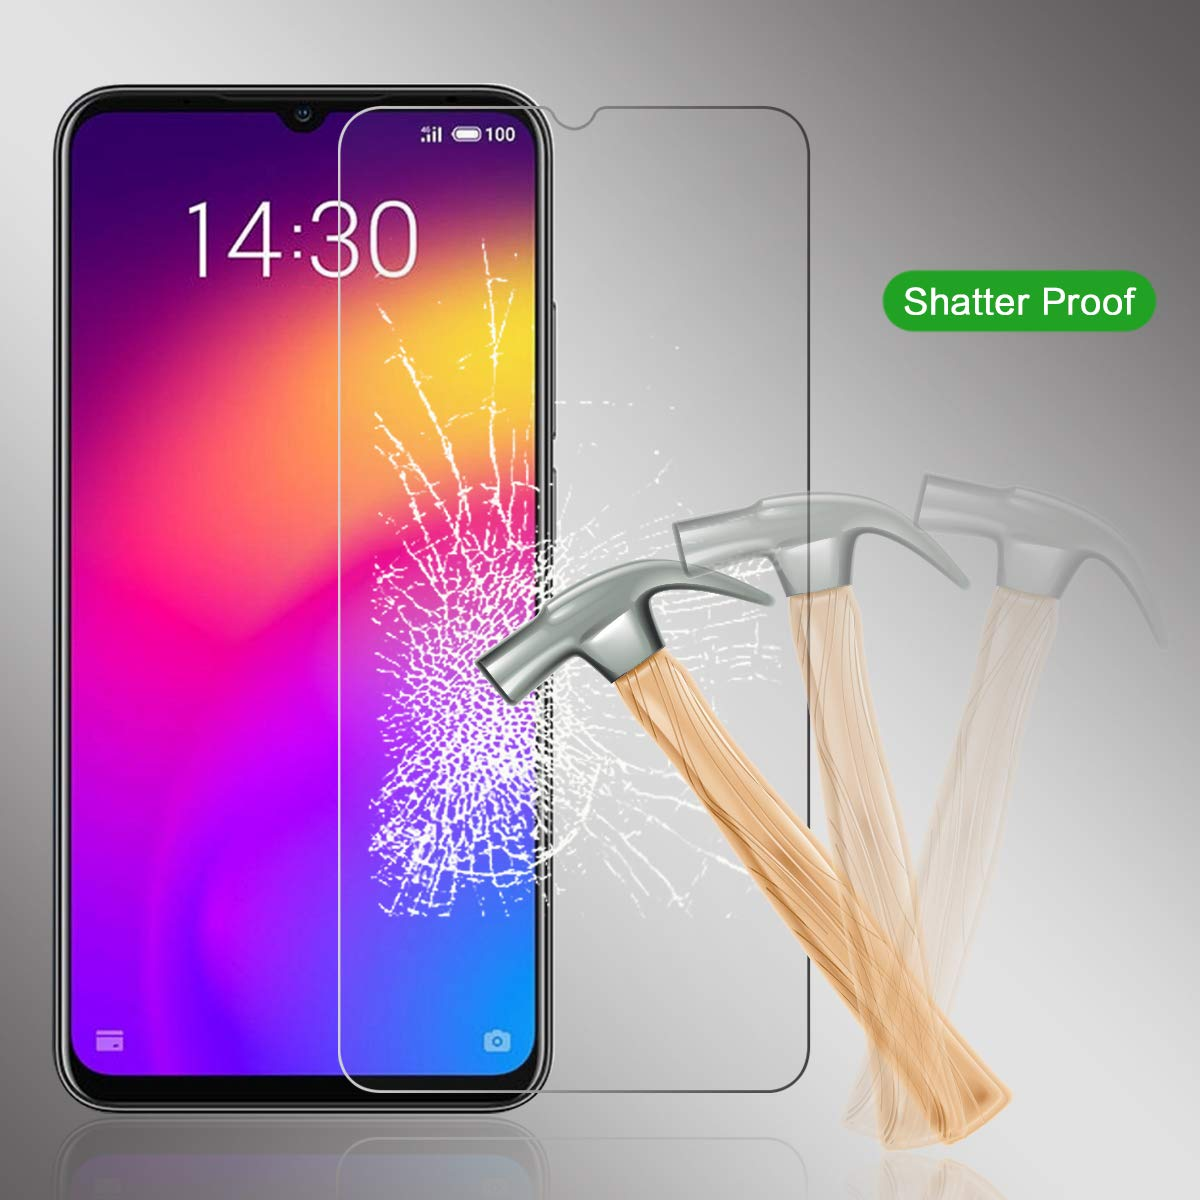 Screen Protector FÜR <font><b>Meizu</b></font> 16S <font><b>Pro</b></font> <font><b>16T</b></font> M8 Lite M6T Premium Gehärtetem Glas Für <font><b>Meizu</b></font> HINWEIS 8 9 image